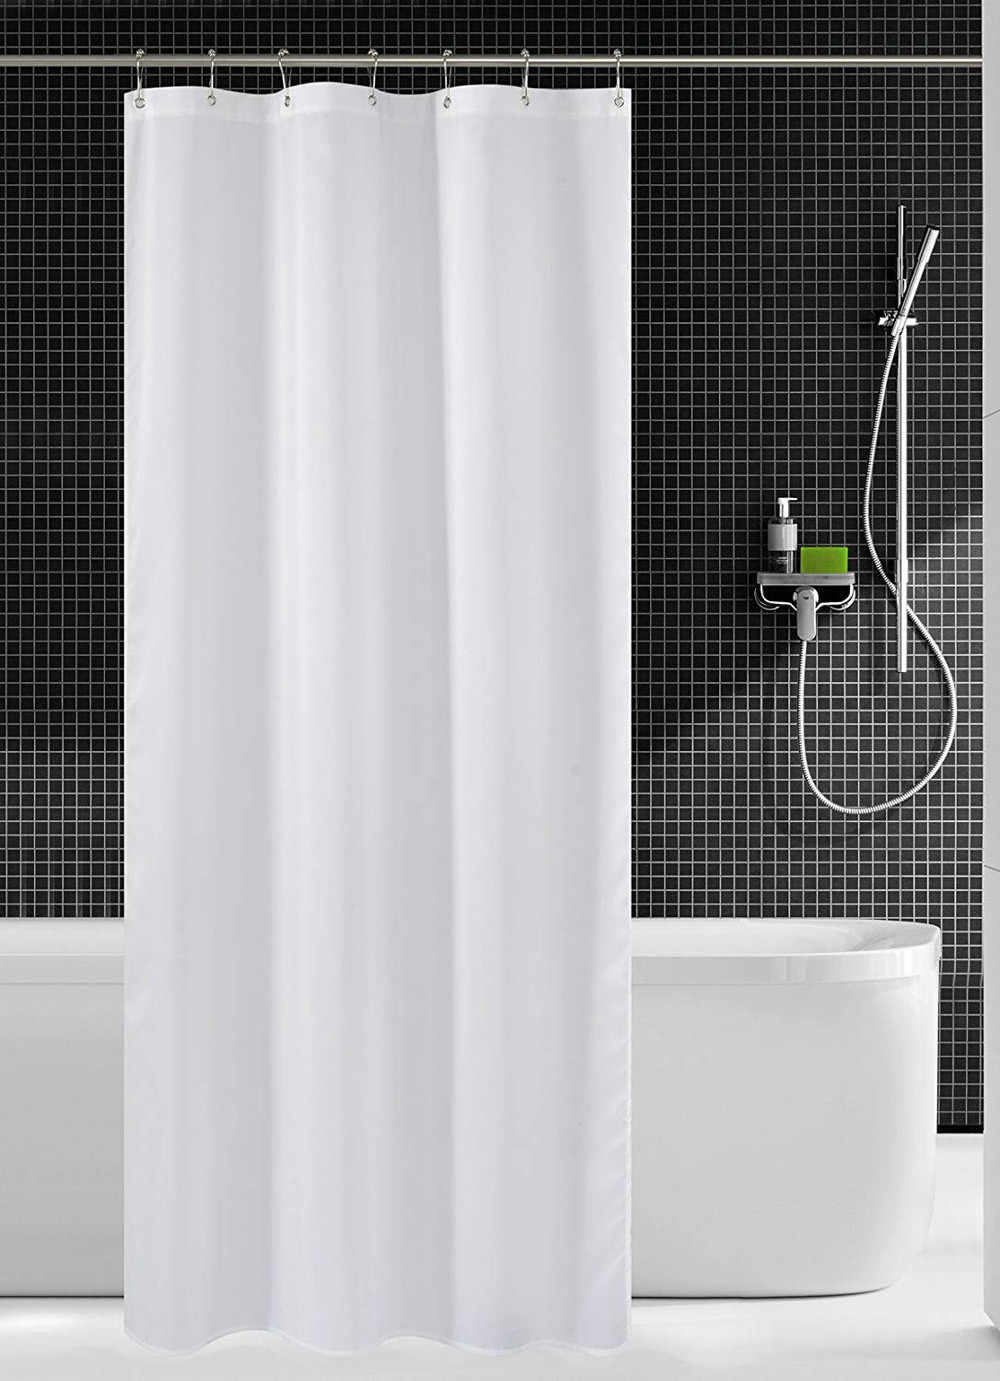 Fabric Shower Curtain Mildew Resistant Washable Water Repellent Spa Bath Home Bathroom Curtains Dropshipping